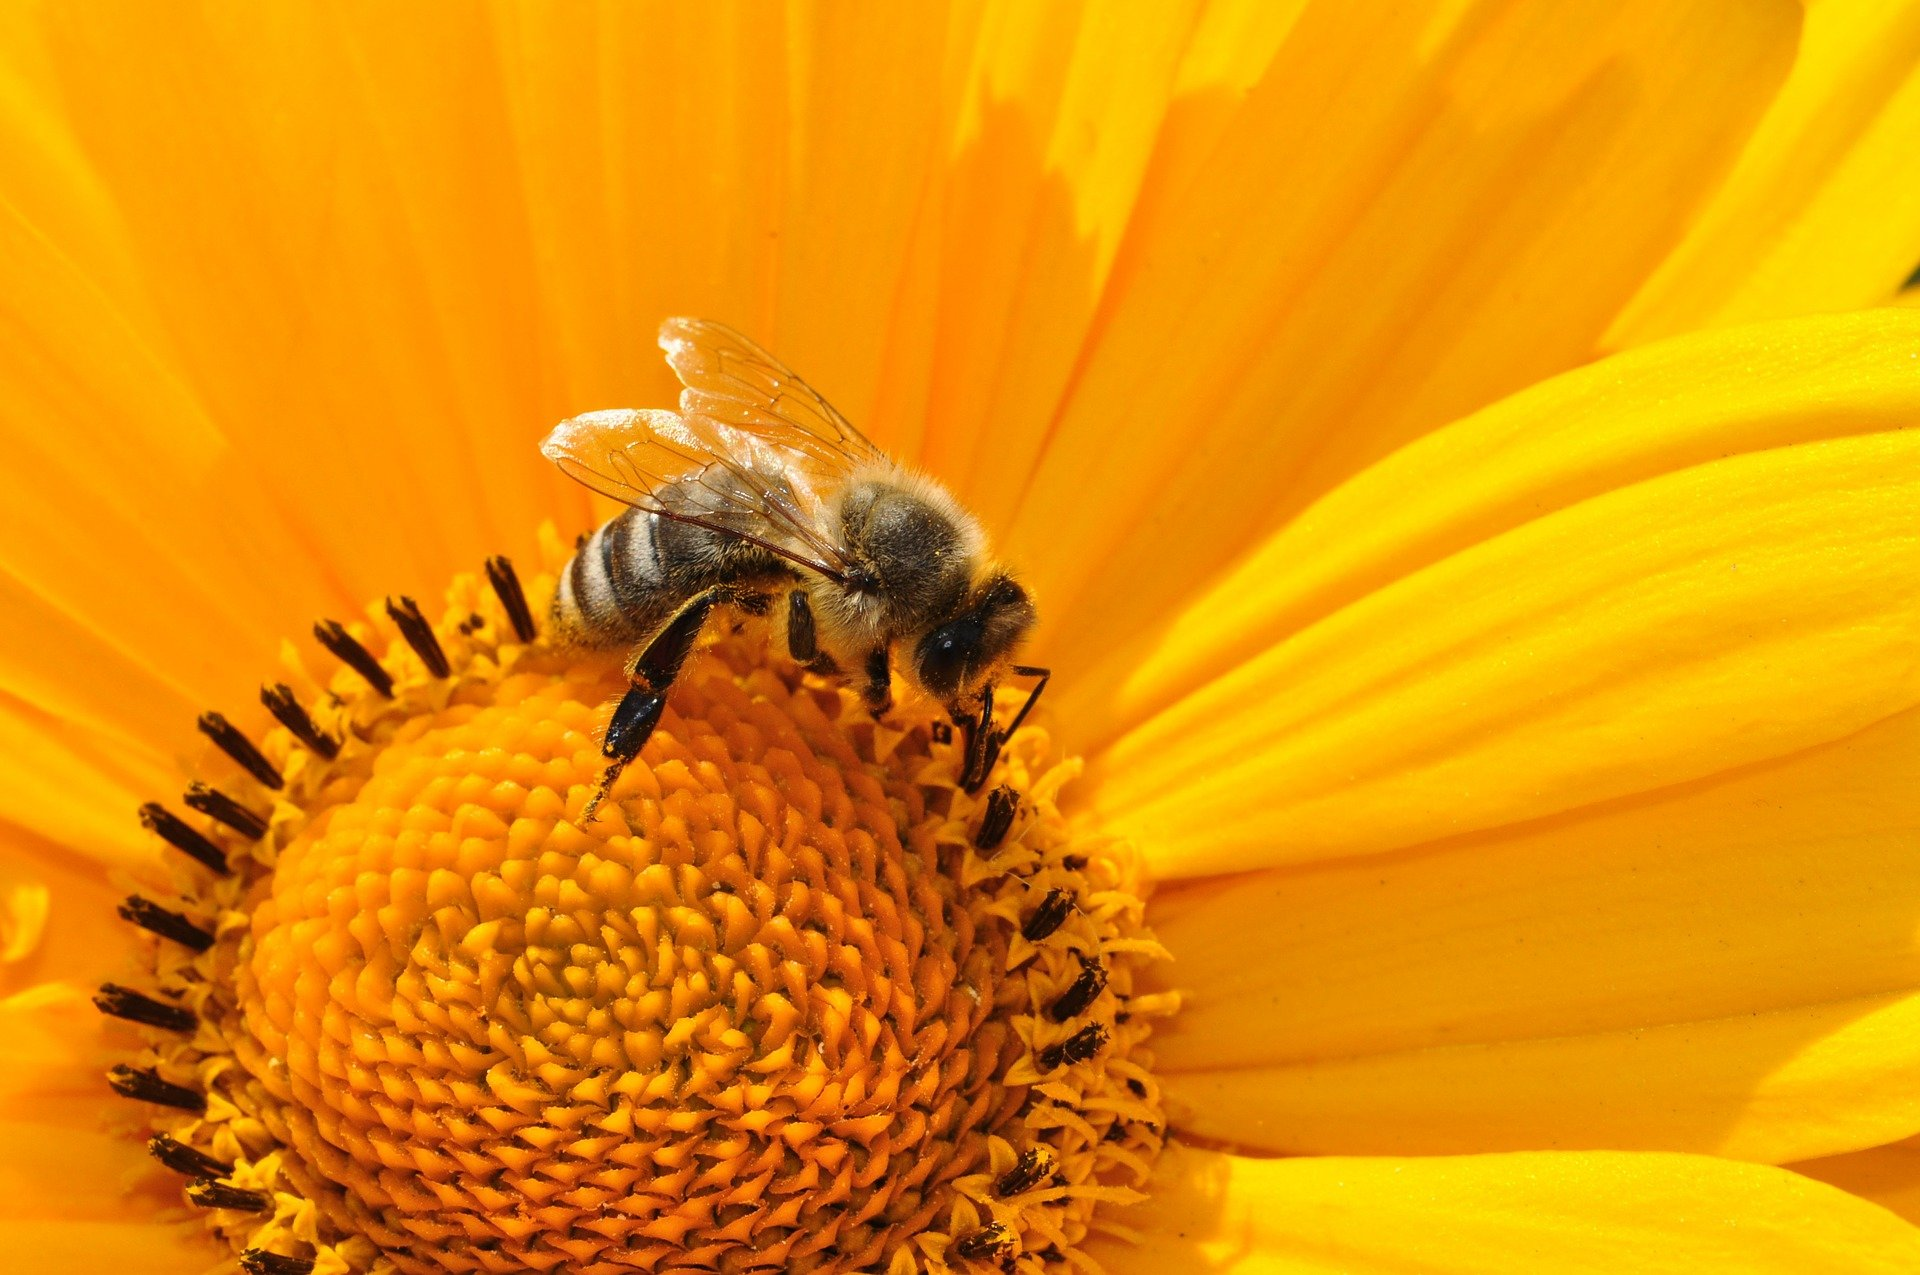 bees cover image